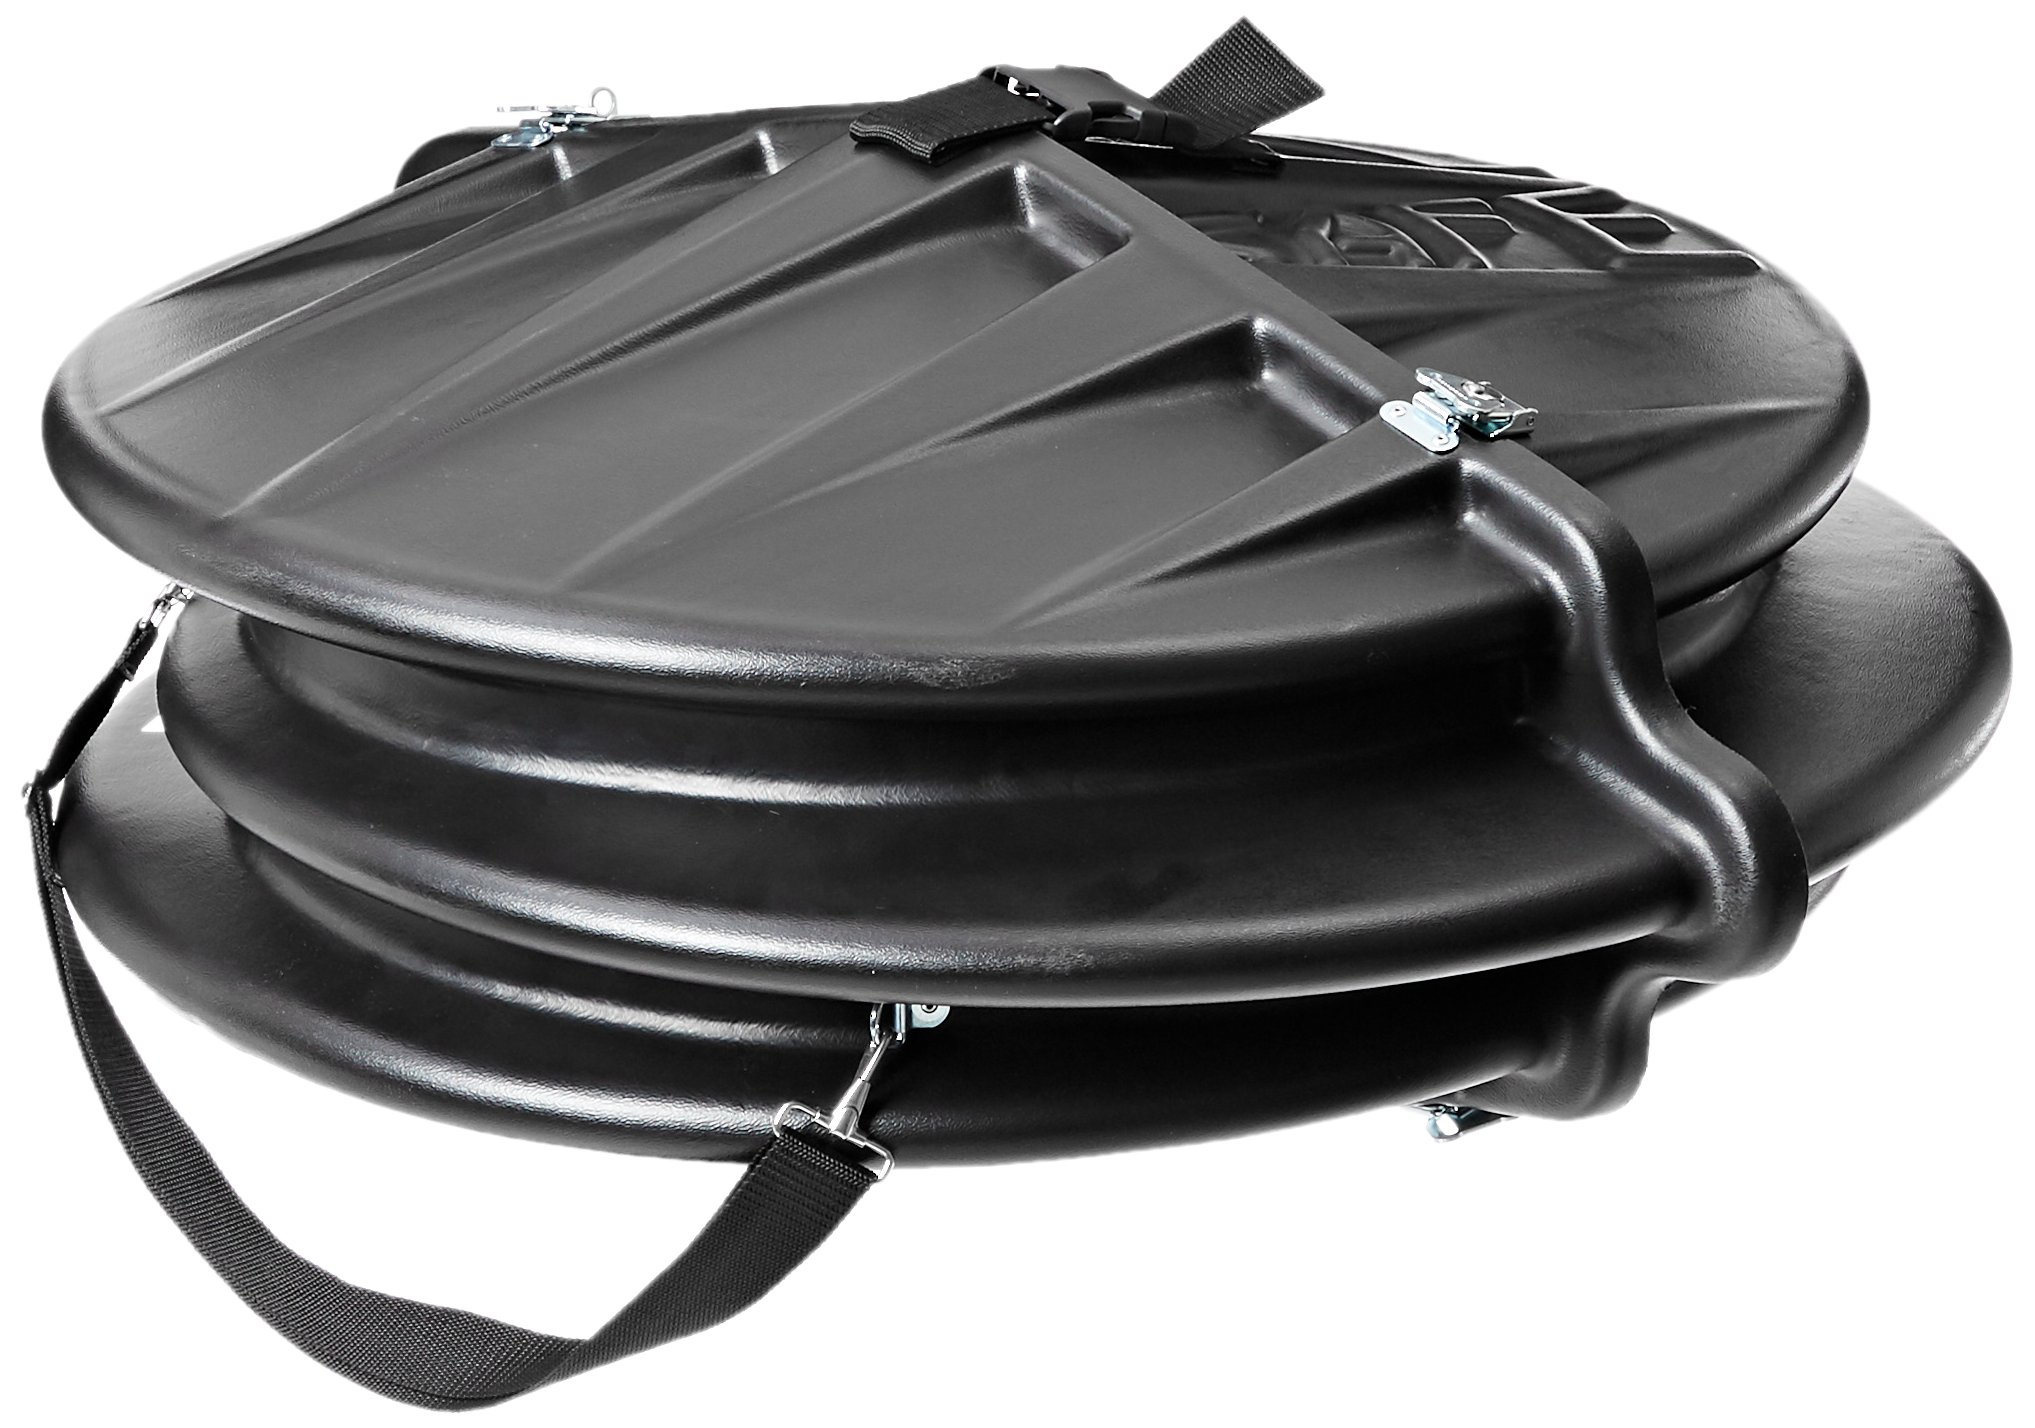 Tri All 3 Sports Pro-Series ''Compact'' Velo safe